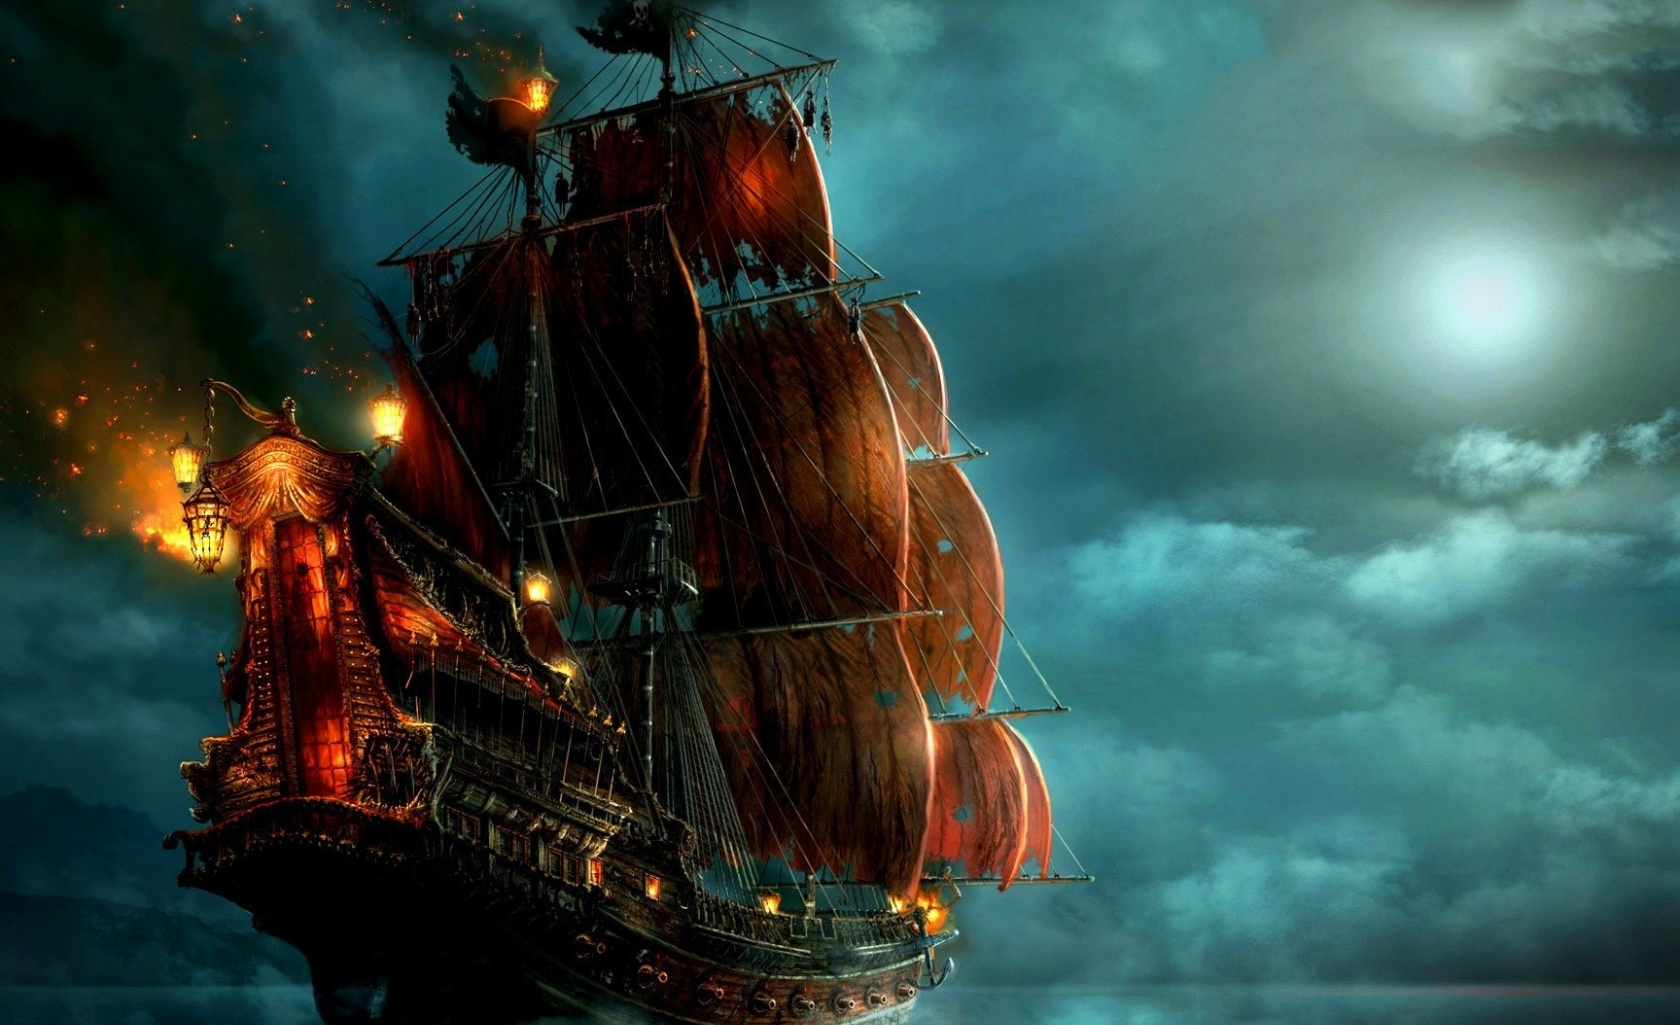 ship wallpaper and background | 1680x1025 | id:339161